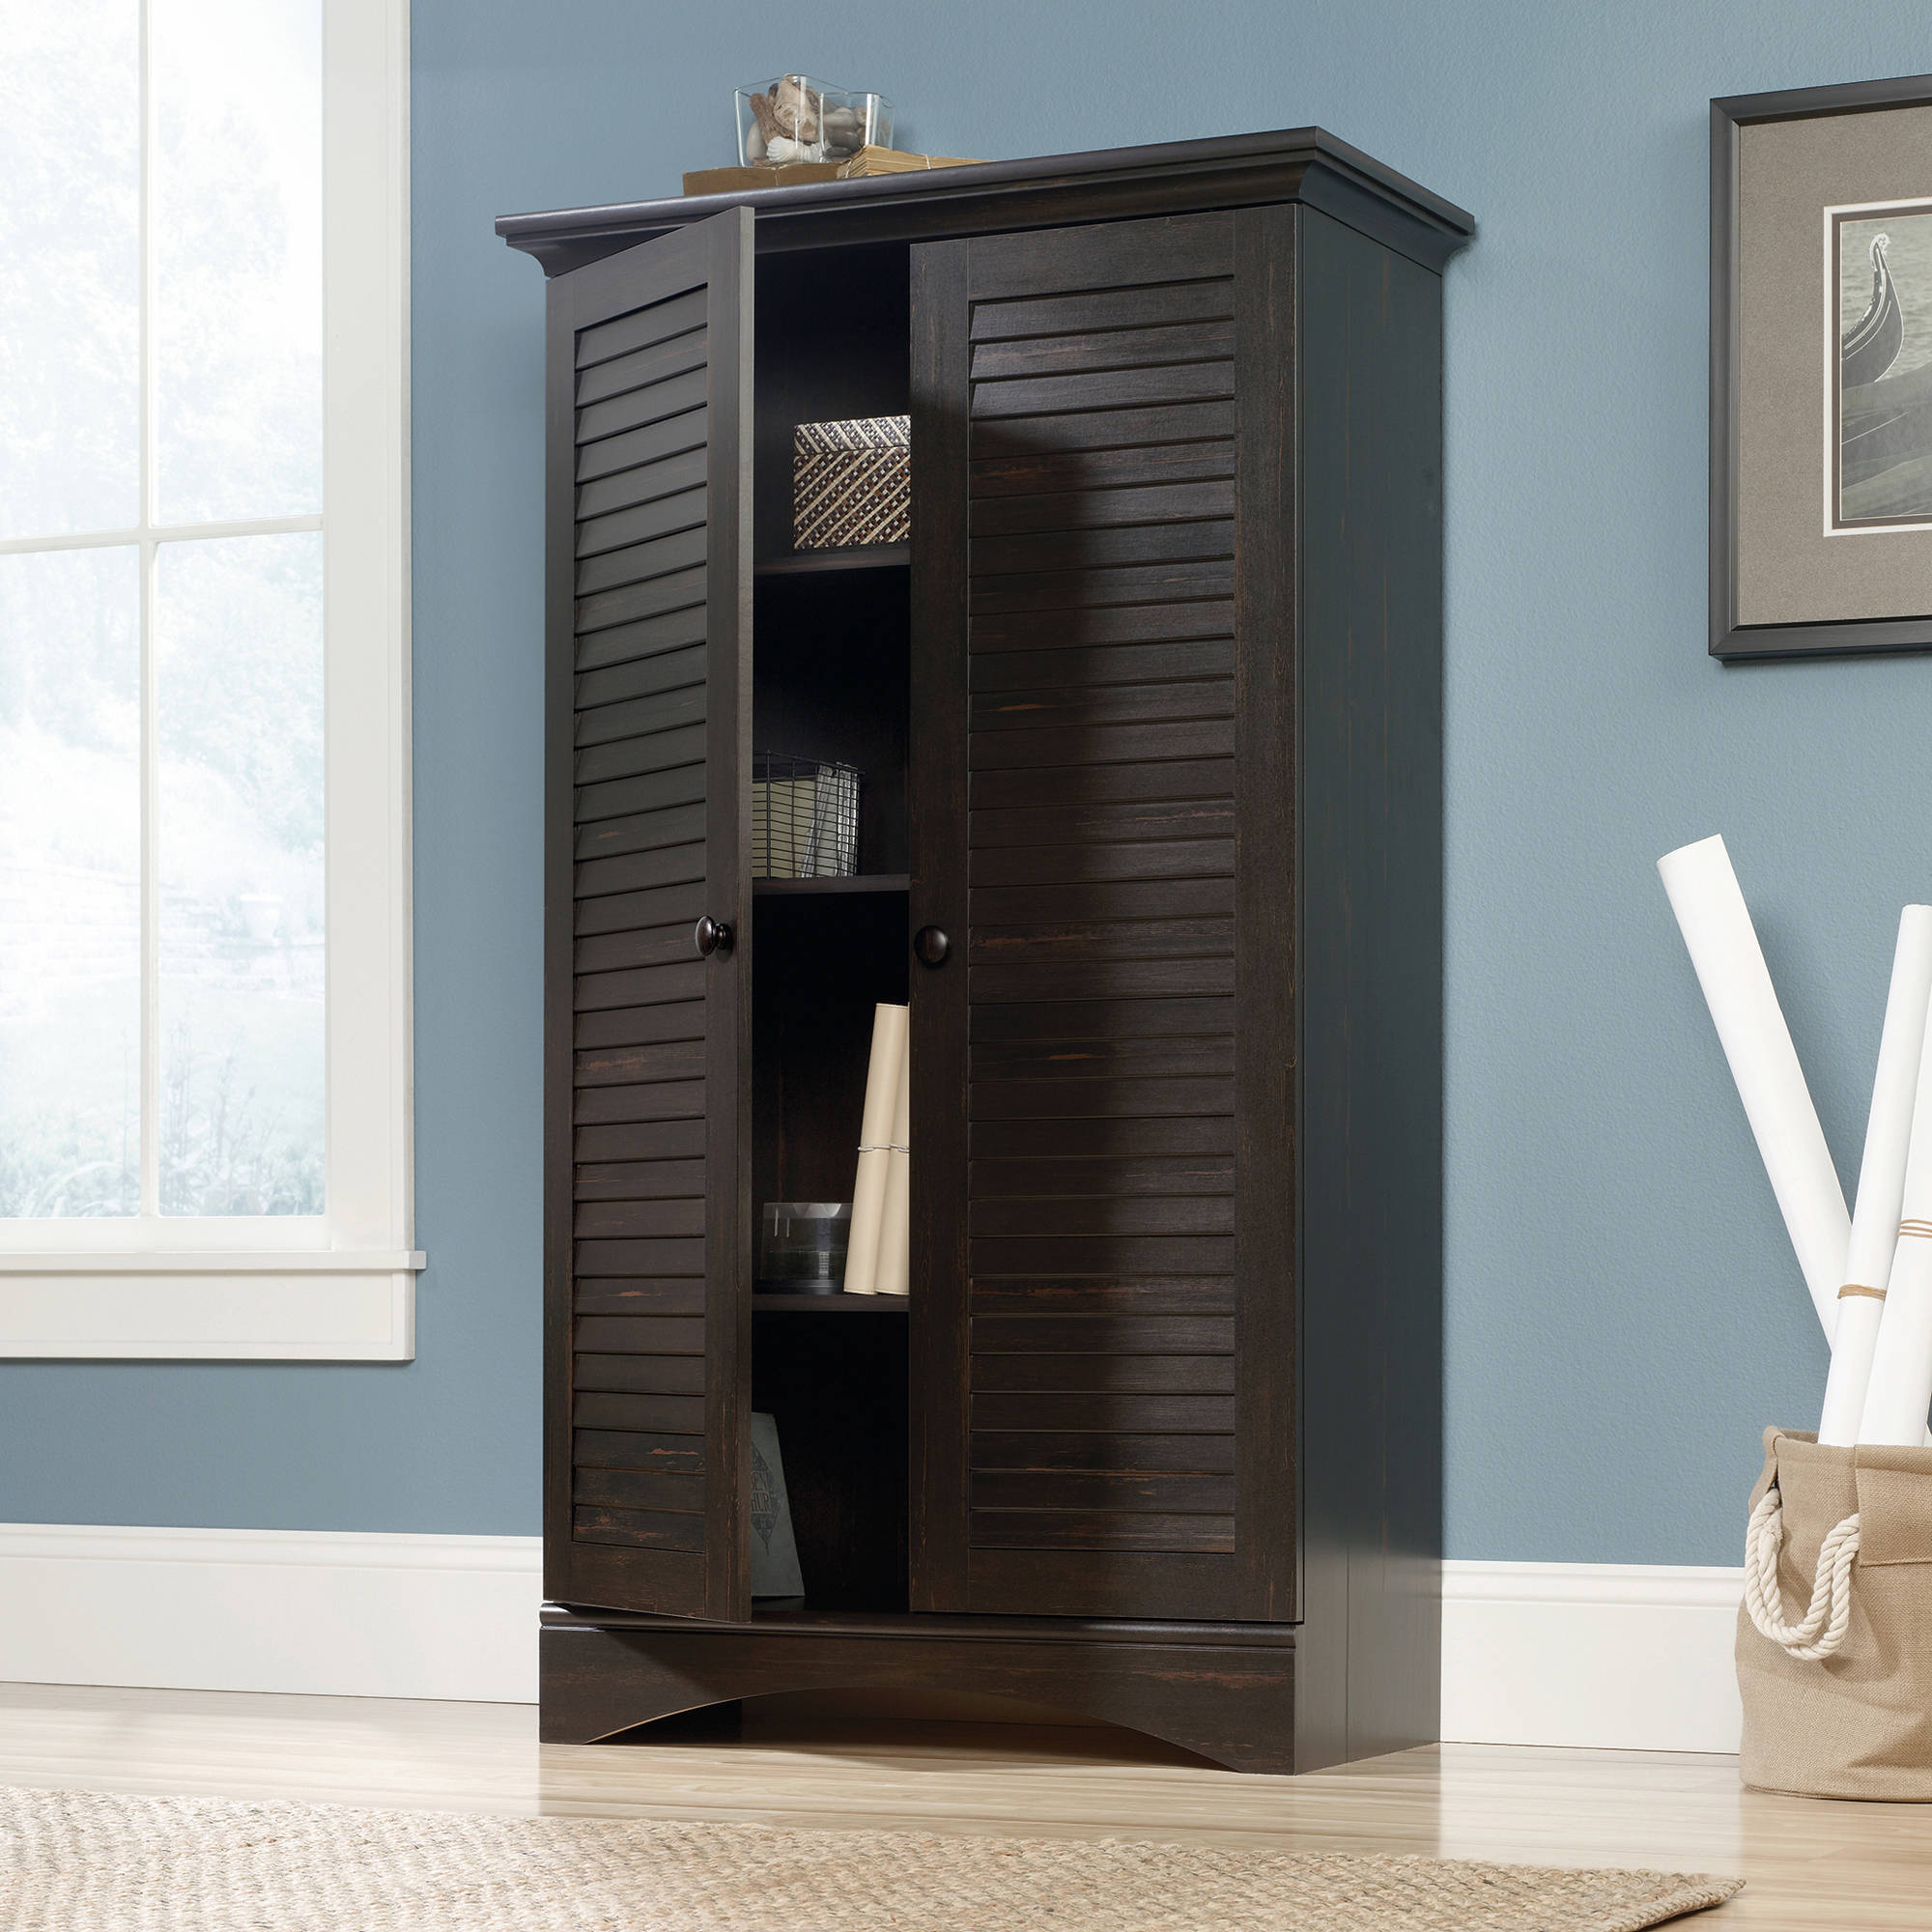 Storage Cabinets With Doors And Shelves